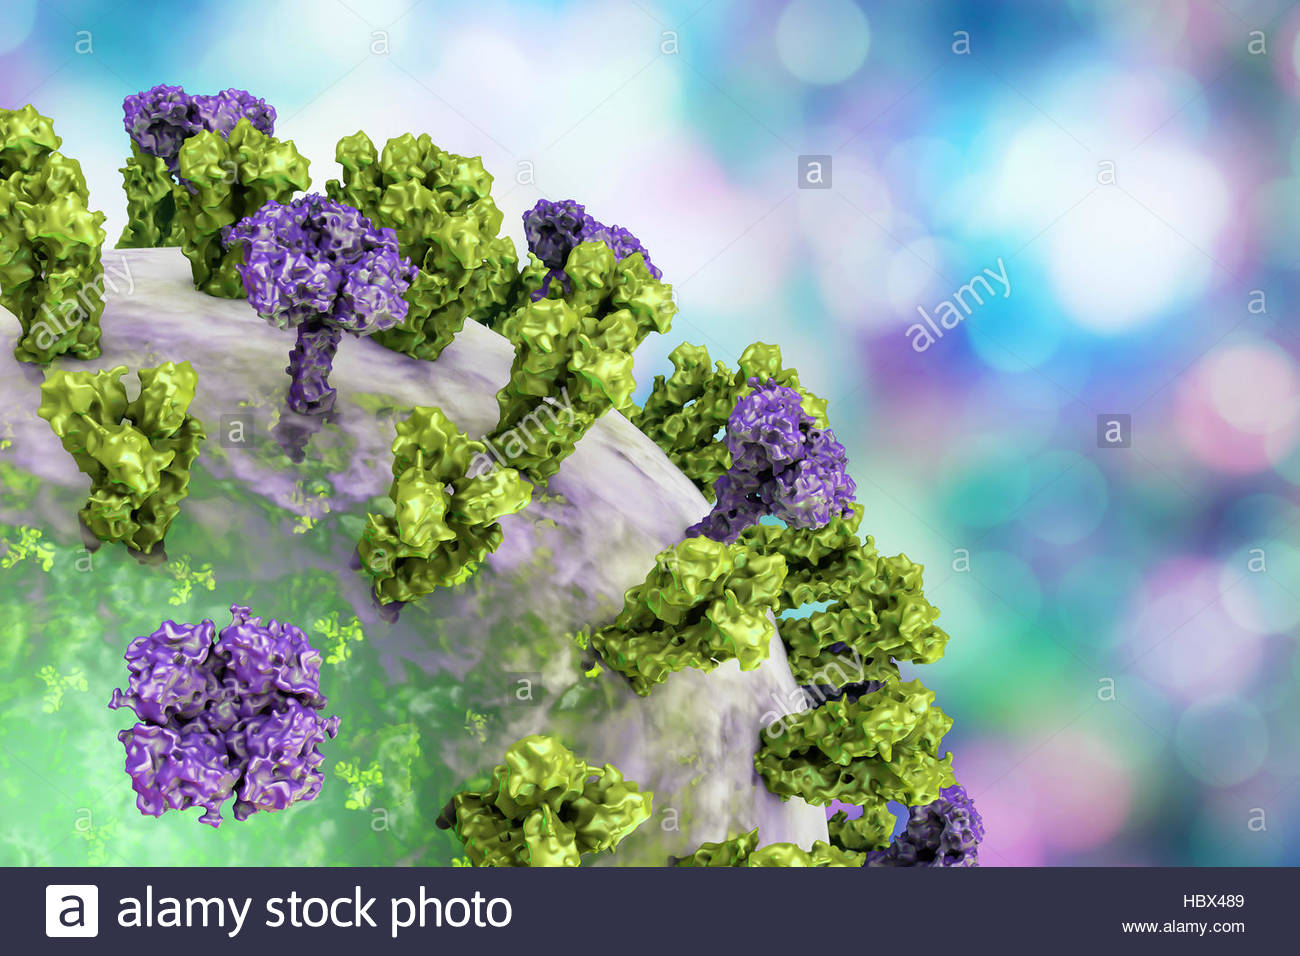 Flu virus. Illustration showing influenza virus with surface glycoprotein spikes hemagglutinin (HA, trimer) and - Stock Image